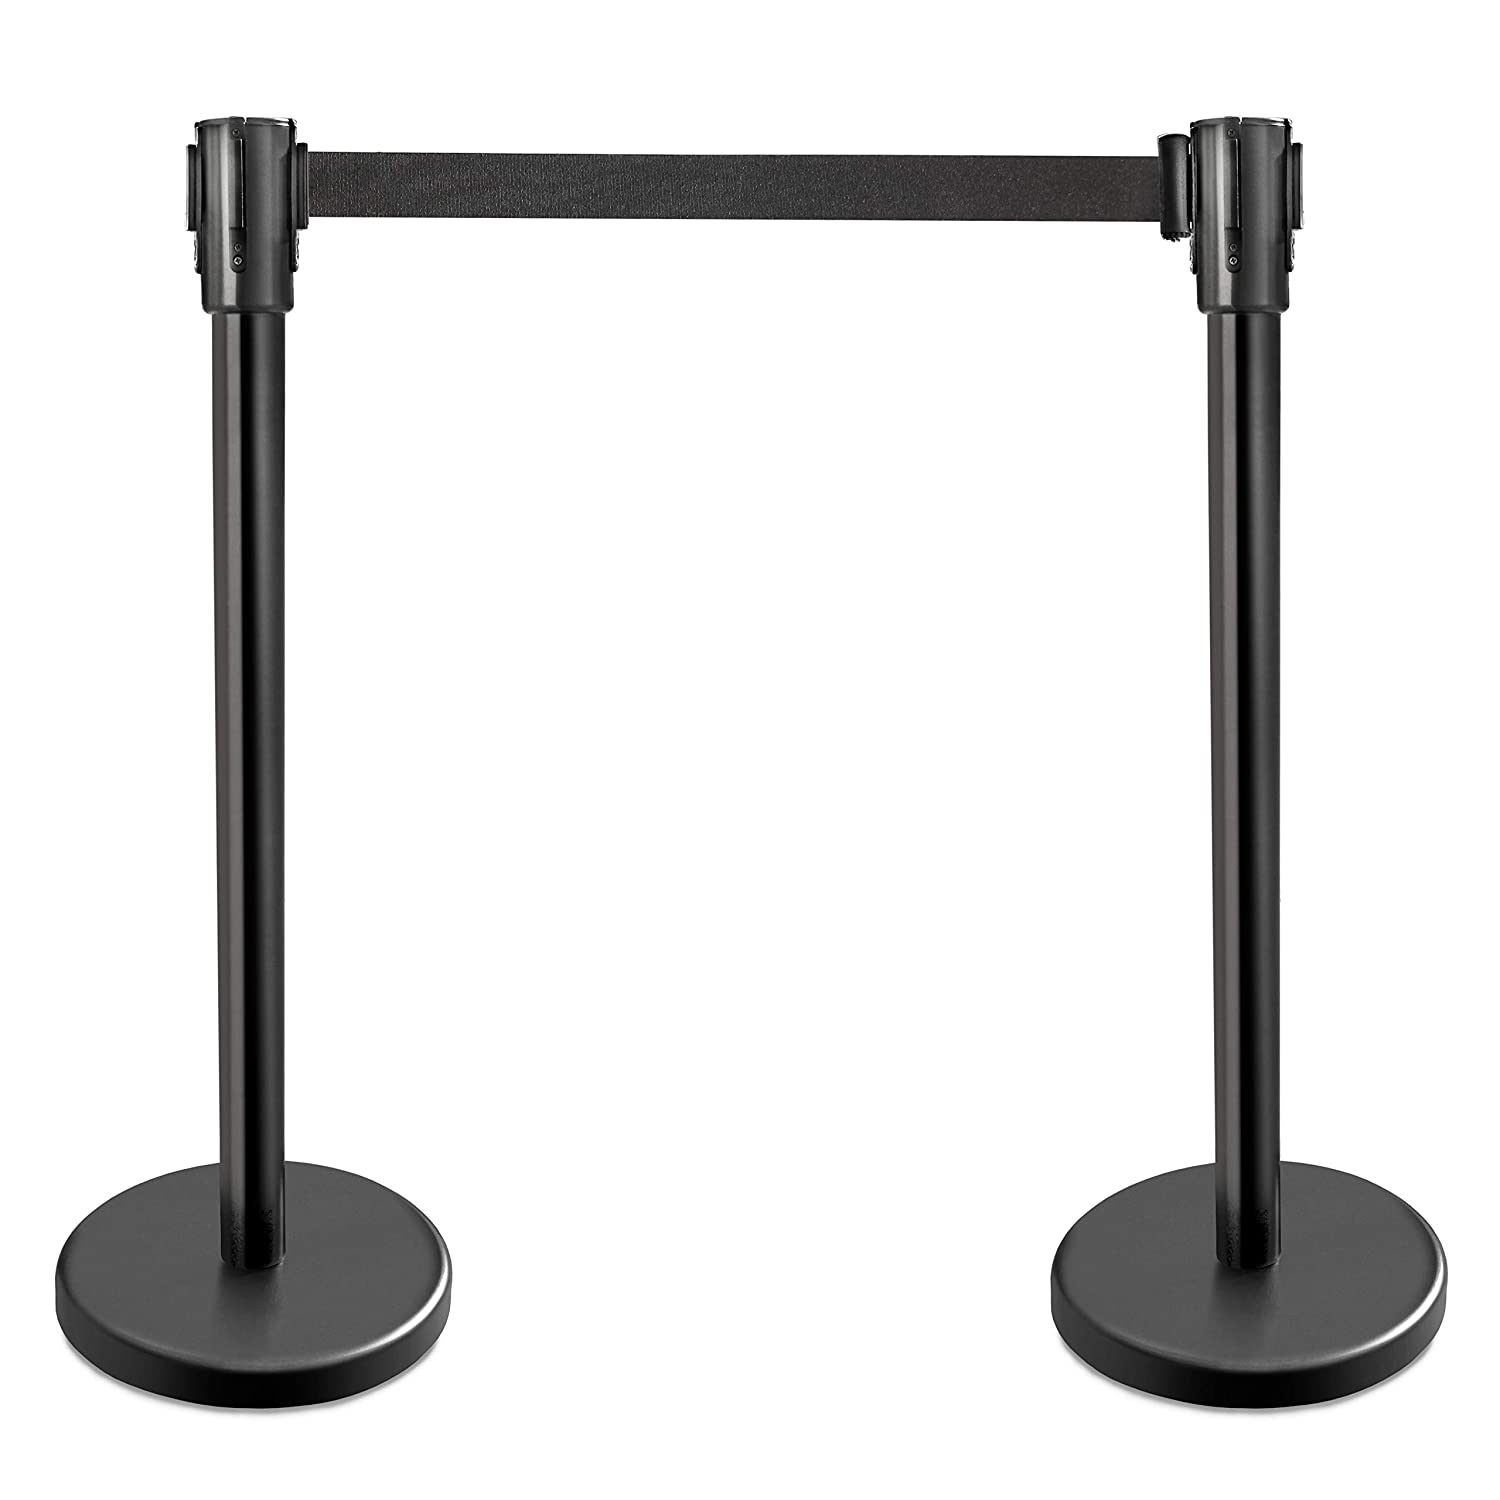 New Star Foodservice 54590 Stanchions, 36-Inch Height, 6.5-Foot Retractable Belt, Set of 2, Black